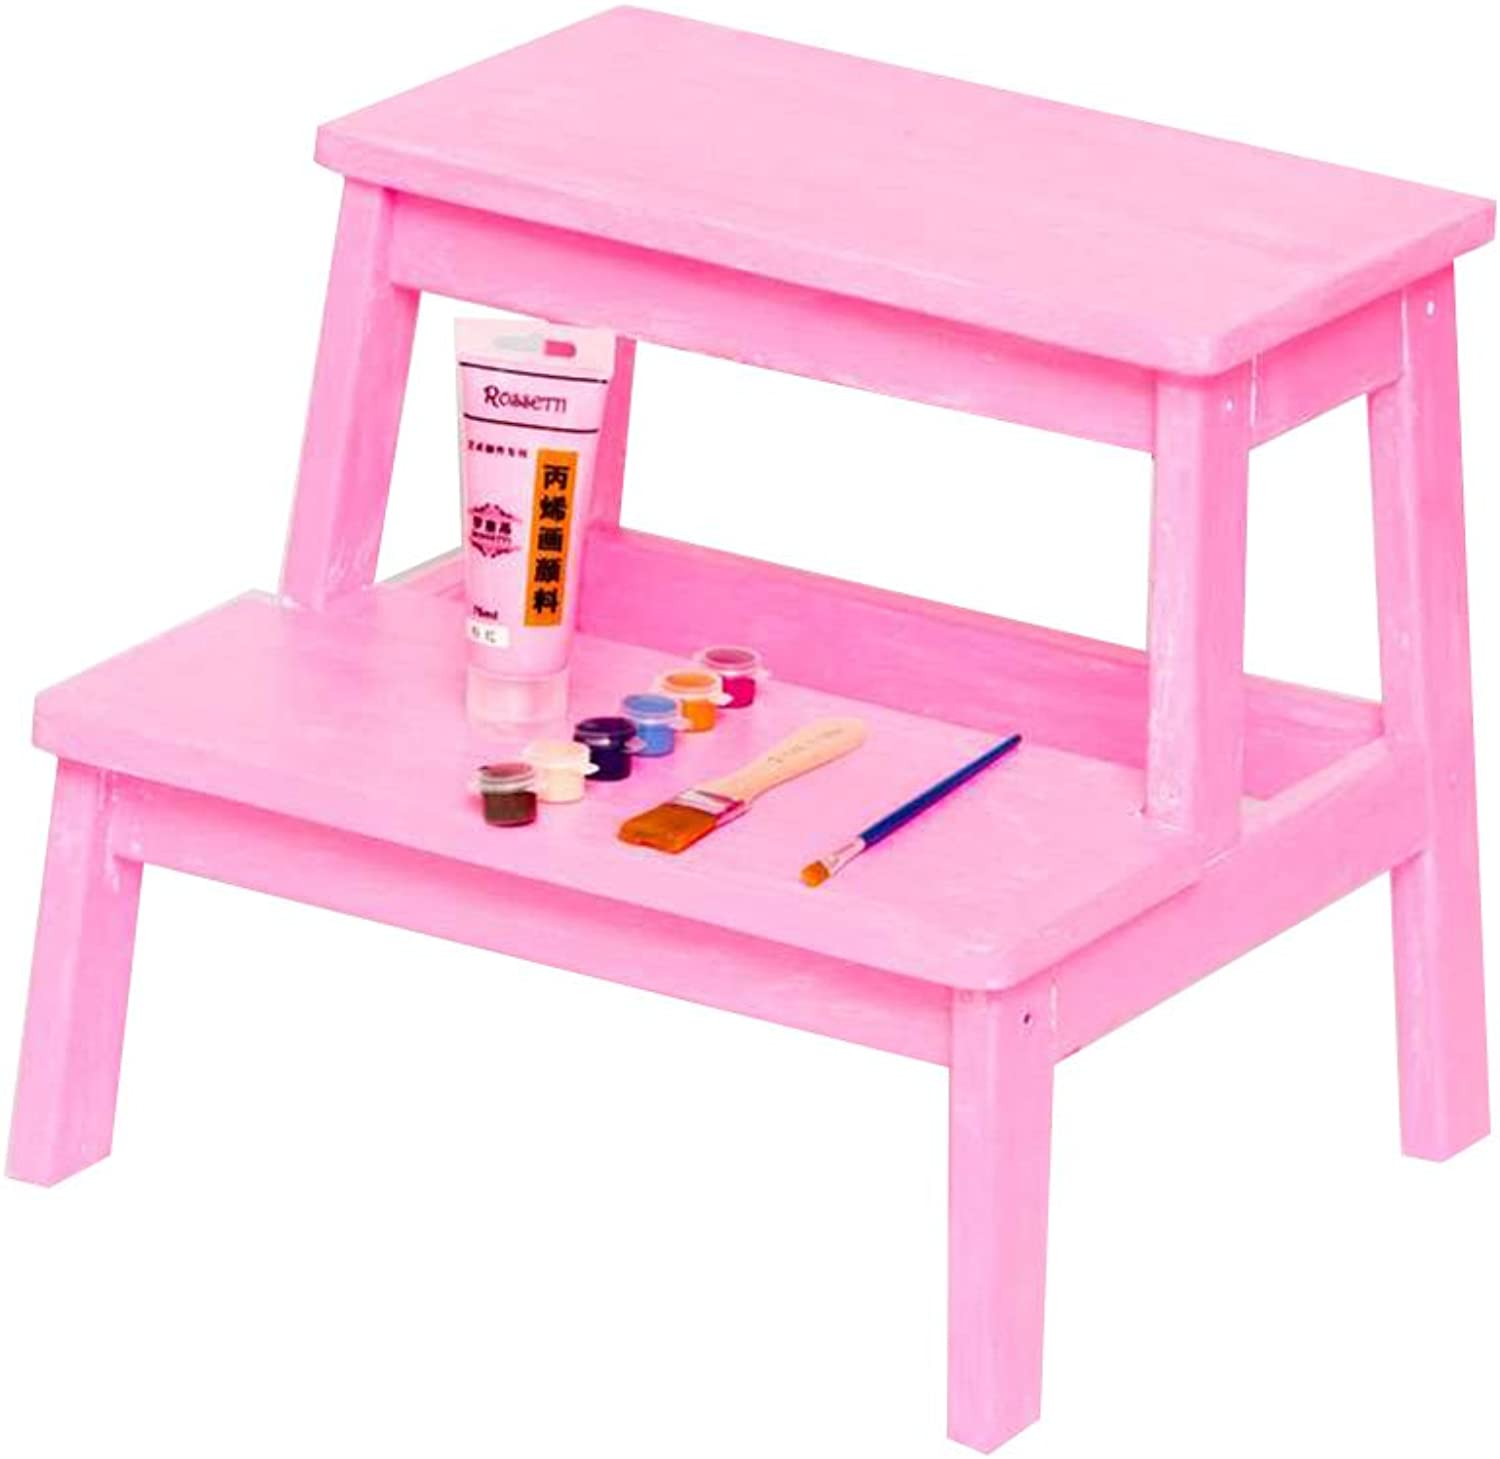 PENGFEI Solid Wood Ladder Stool Multifunction colors DIY Ascend Footstool Change shoes 2 Steps, 5 colors Furniture (color   Pink)